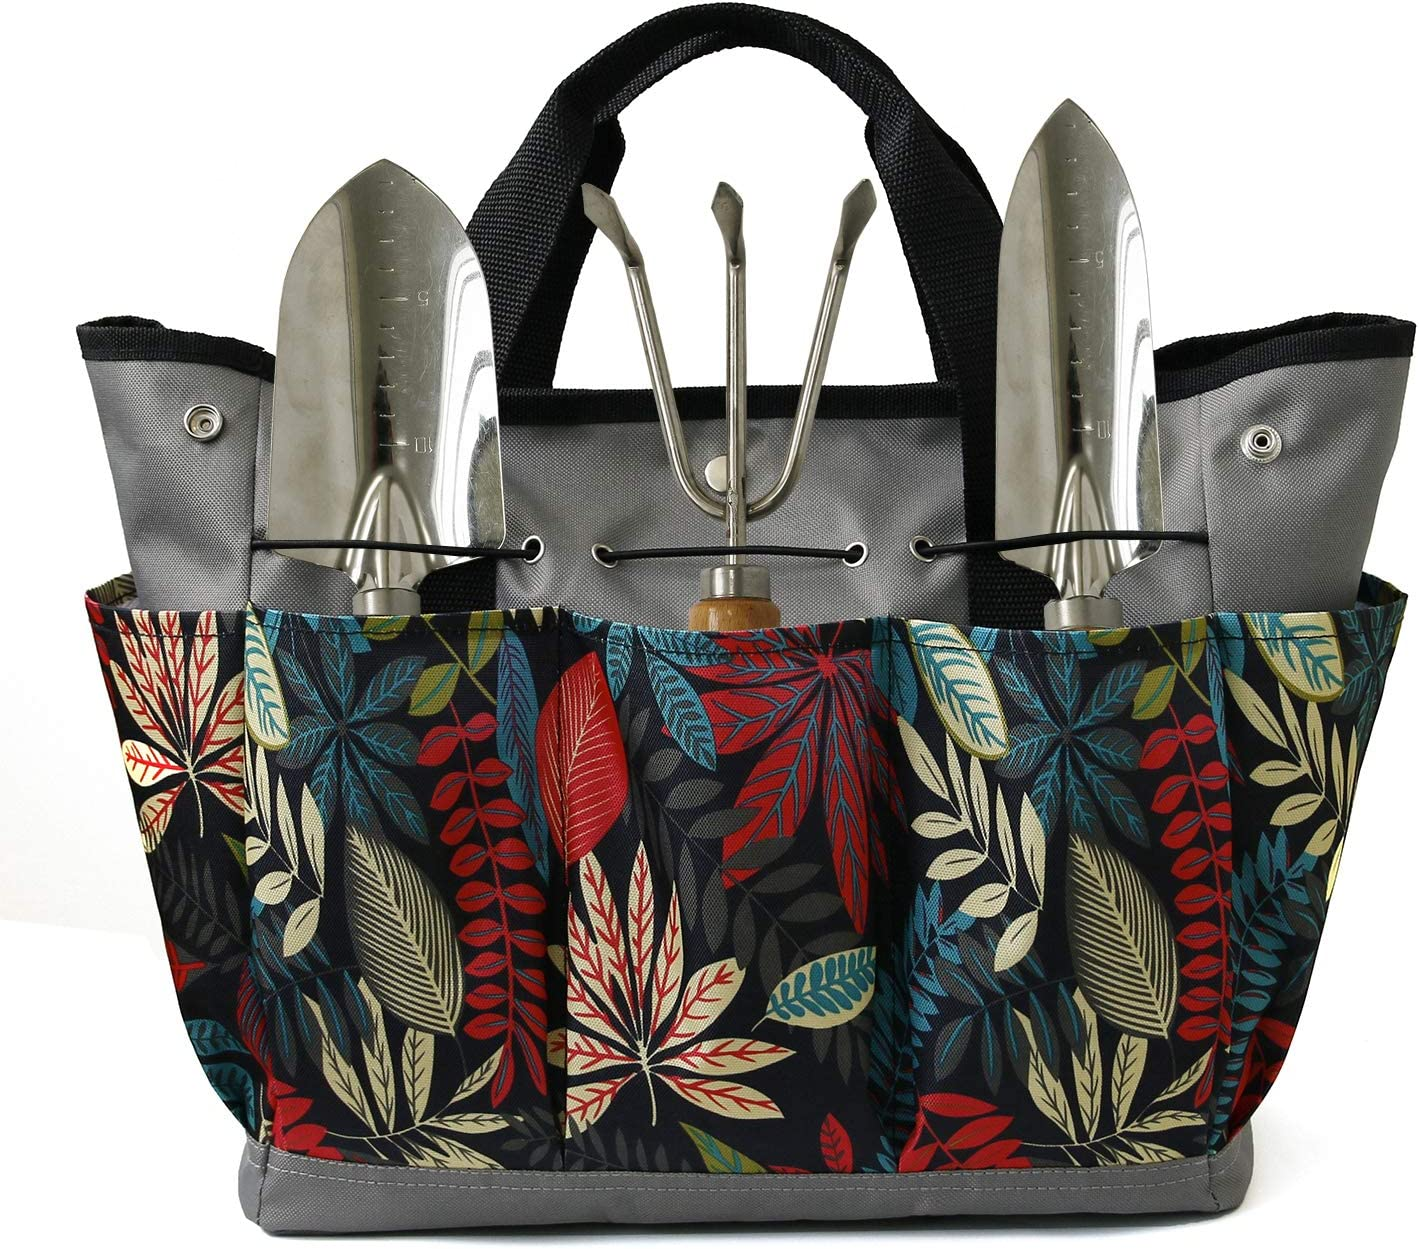 Mydays Canvas Garden Tool Tote Bag, Heavy-Duty Gardening Pouch, Vegetable Herb Garden Hand Tool Storage Tote, with 8 Pockets and Leather Handle, Floral Gardening Gift, Tools Not Included (Grey)